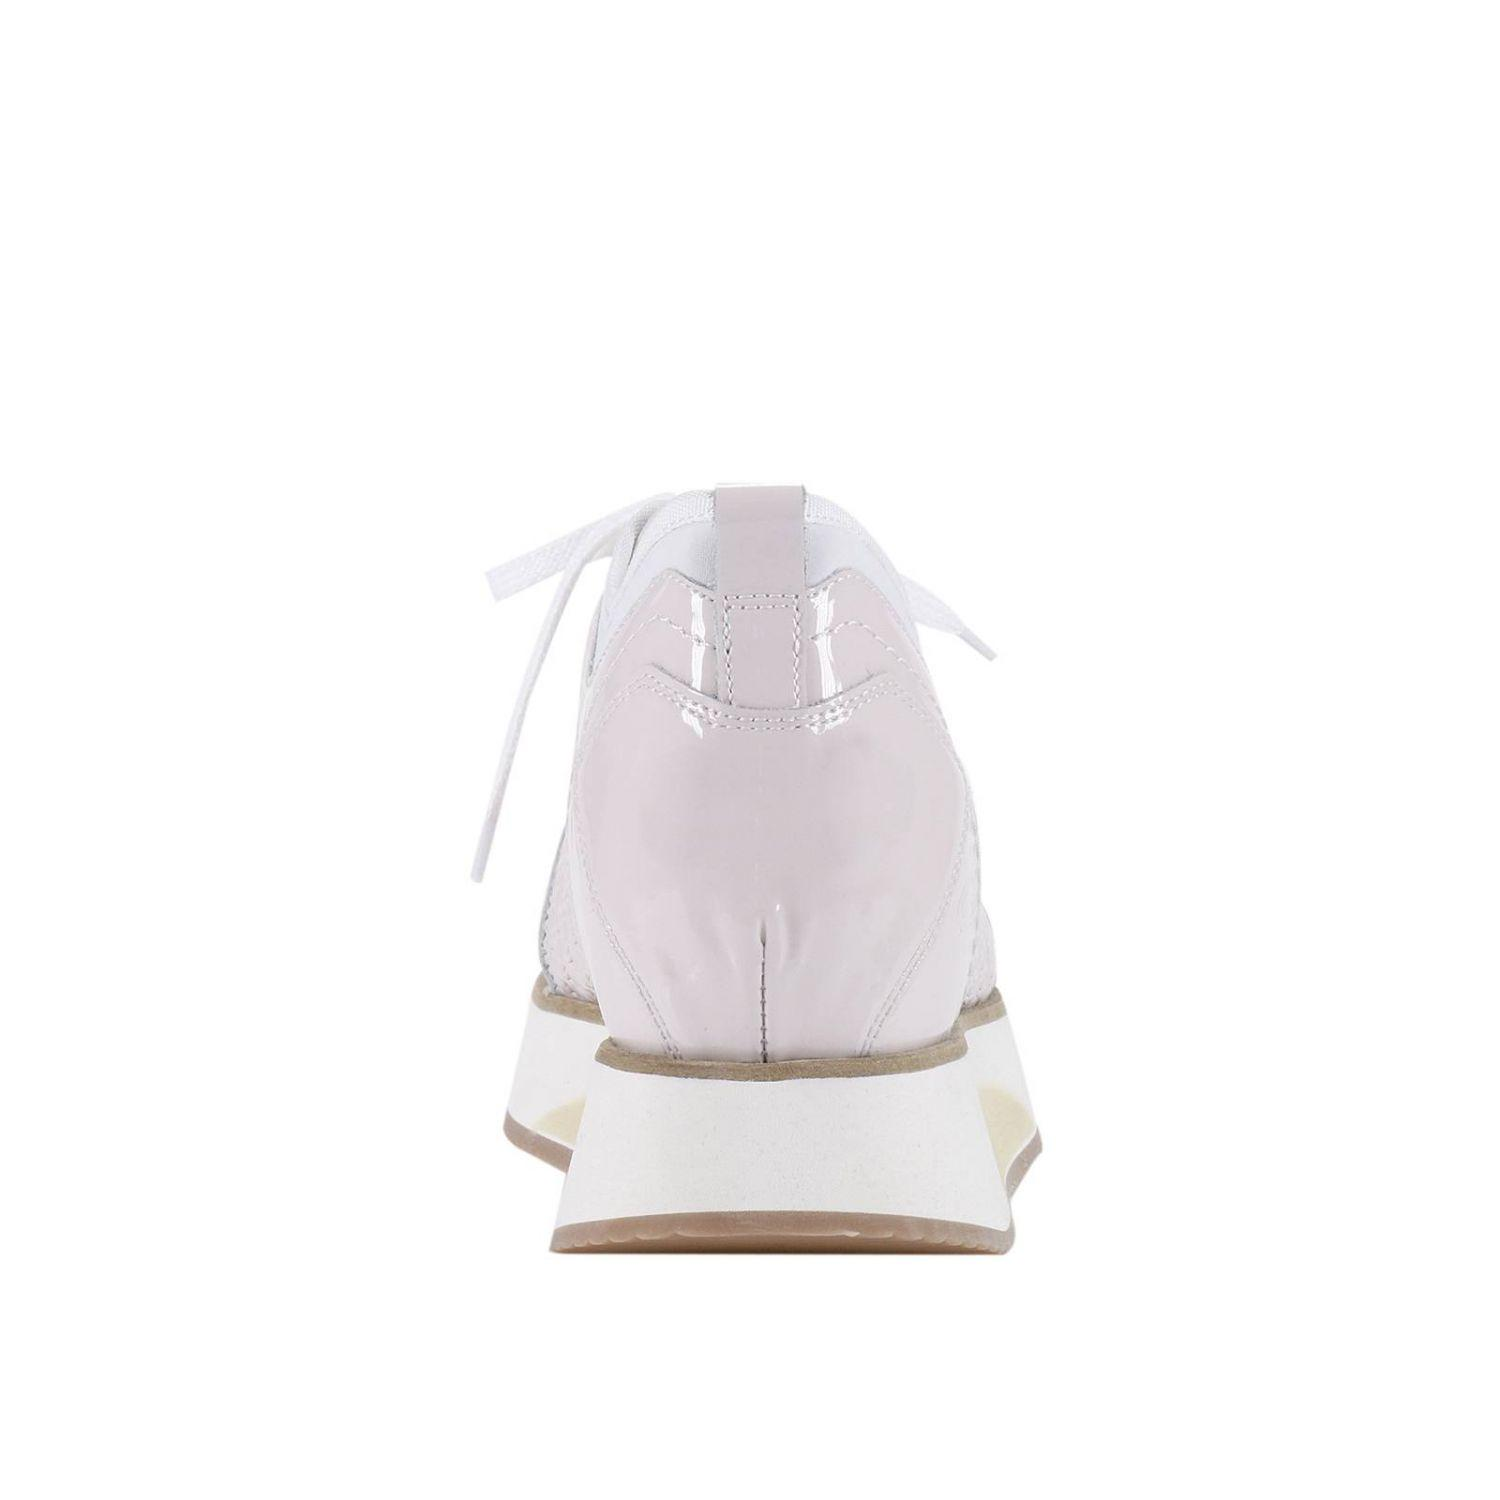 Alberto Guardiani Leather Sneakers Shoes Women in Powder (White)